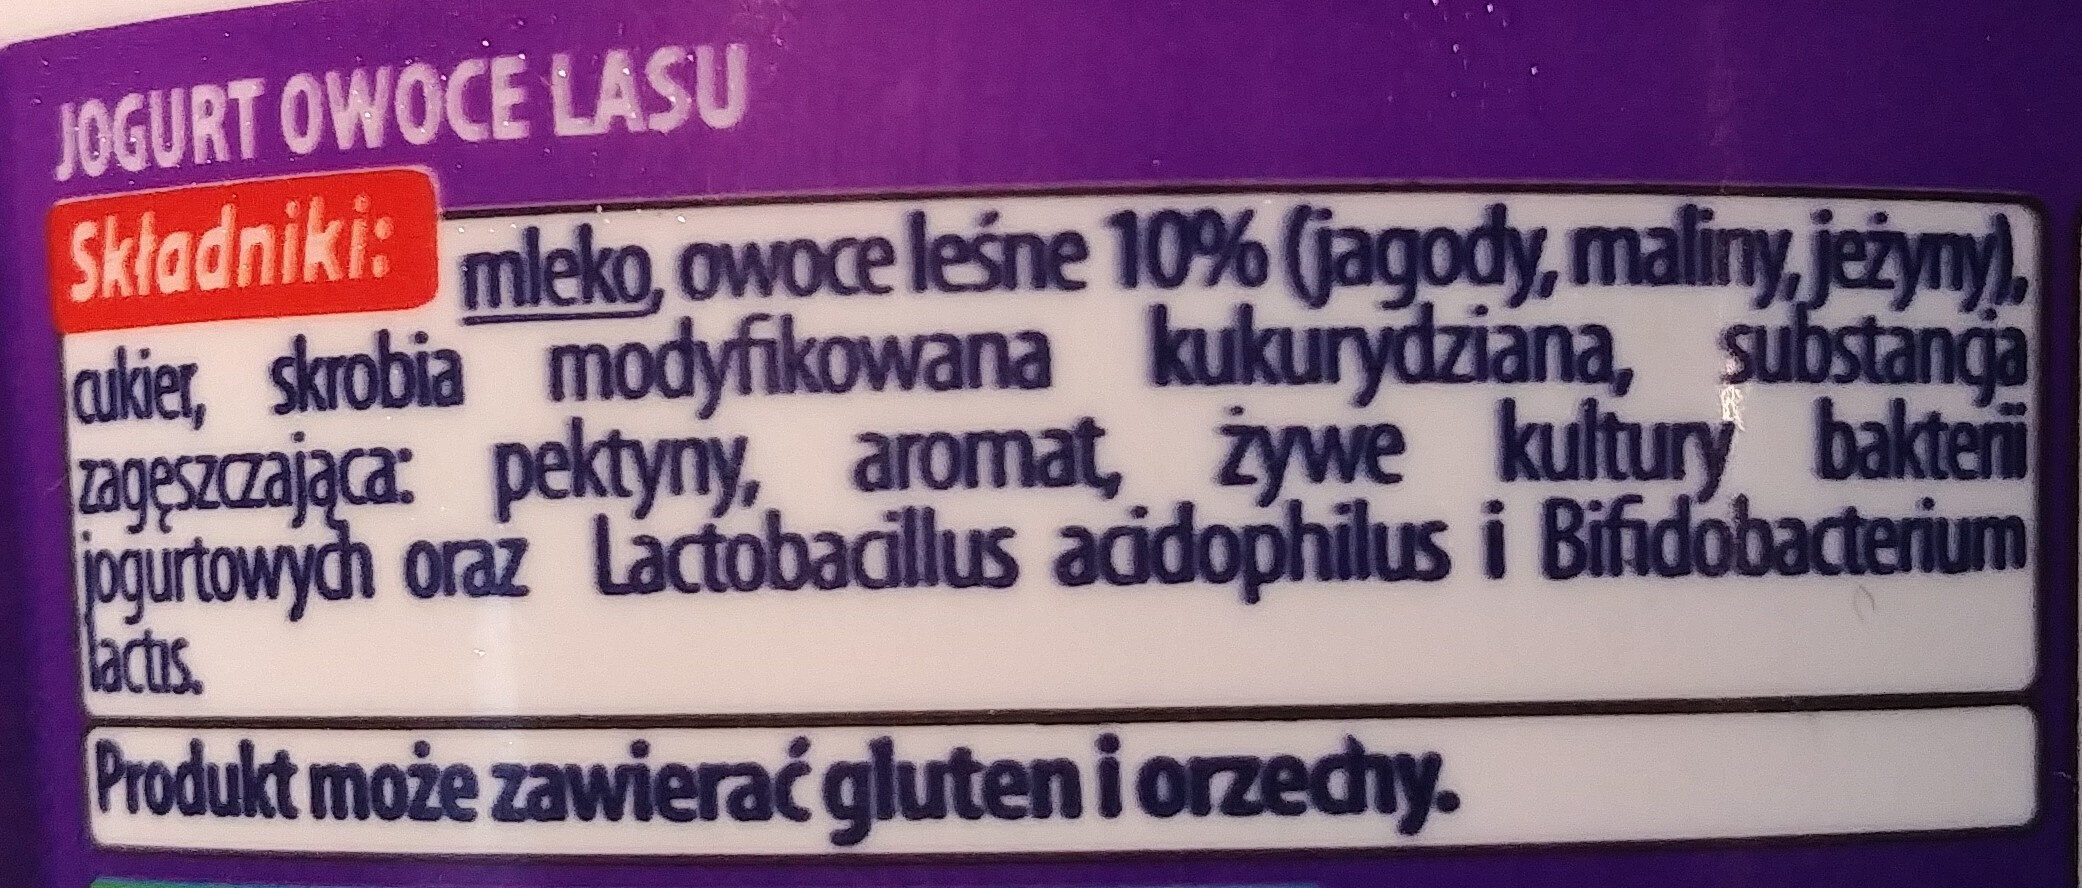 Jogurt owoce lasu - Ingredients